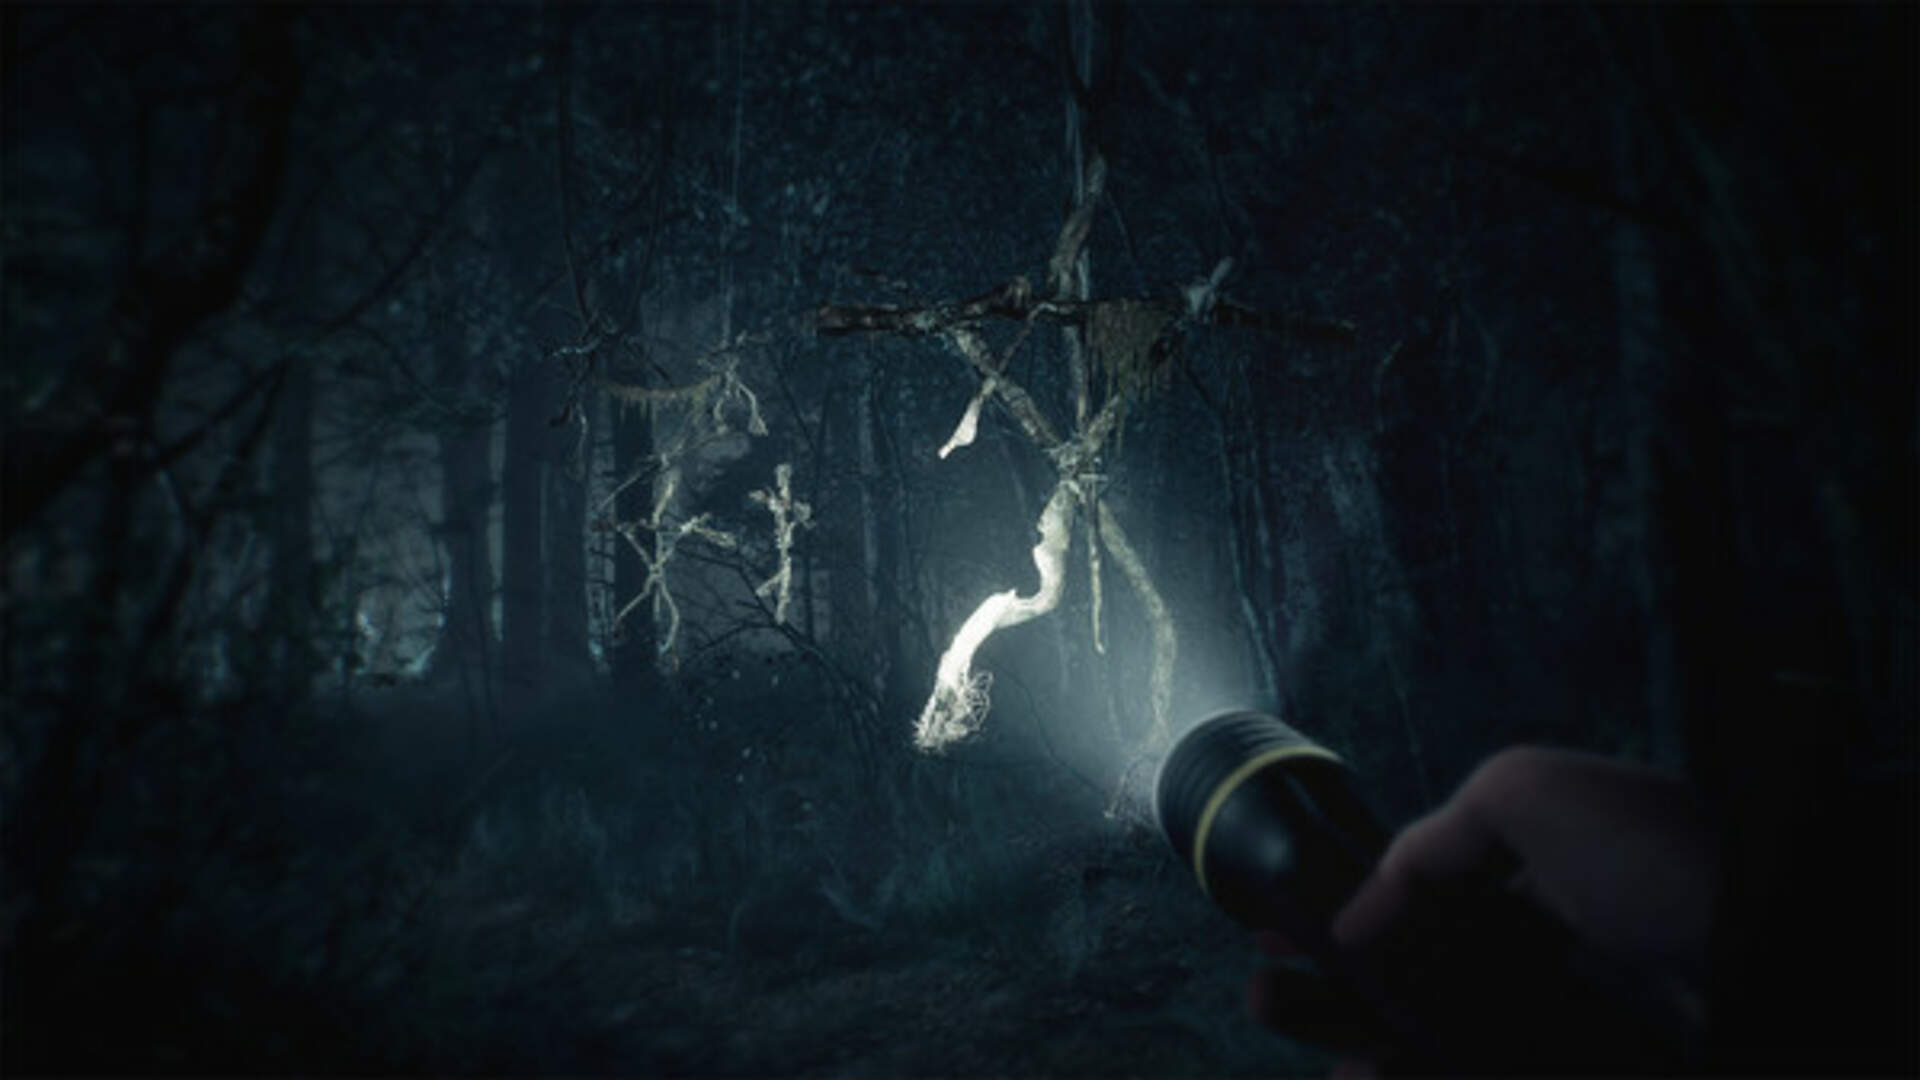 Blair Witch Gameplay: Every Trailer Released So Far